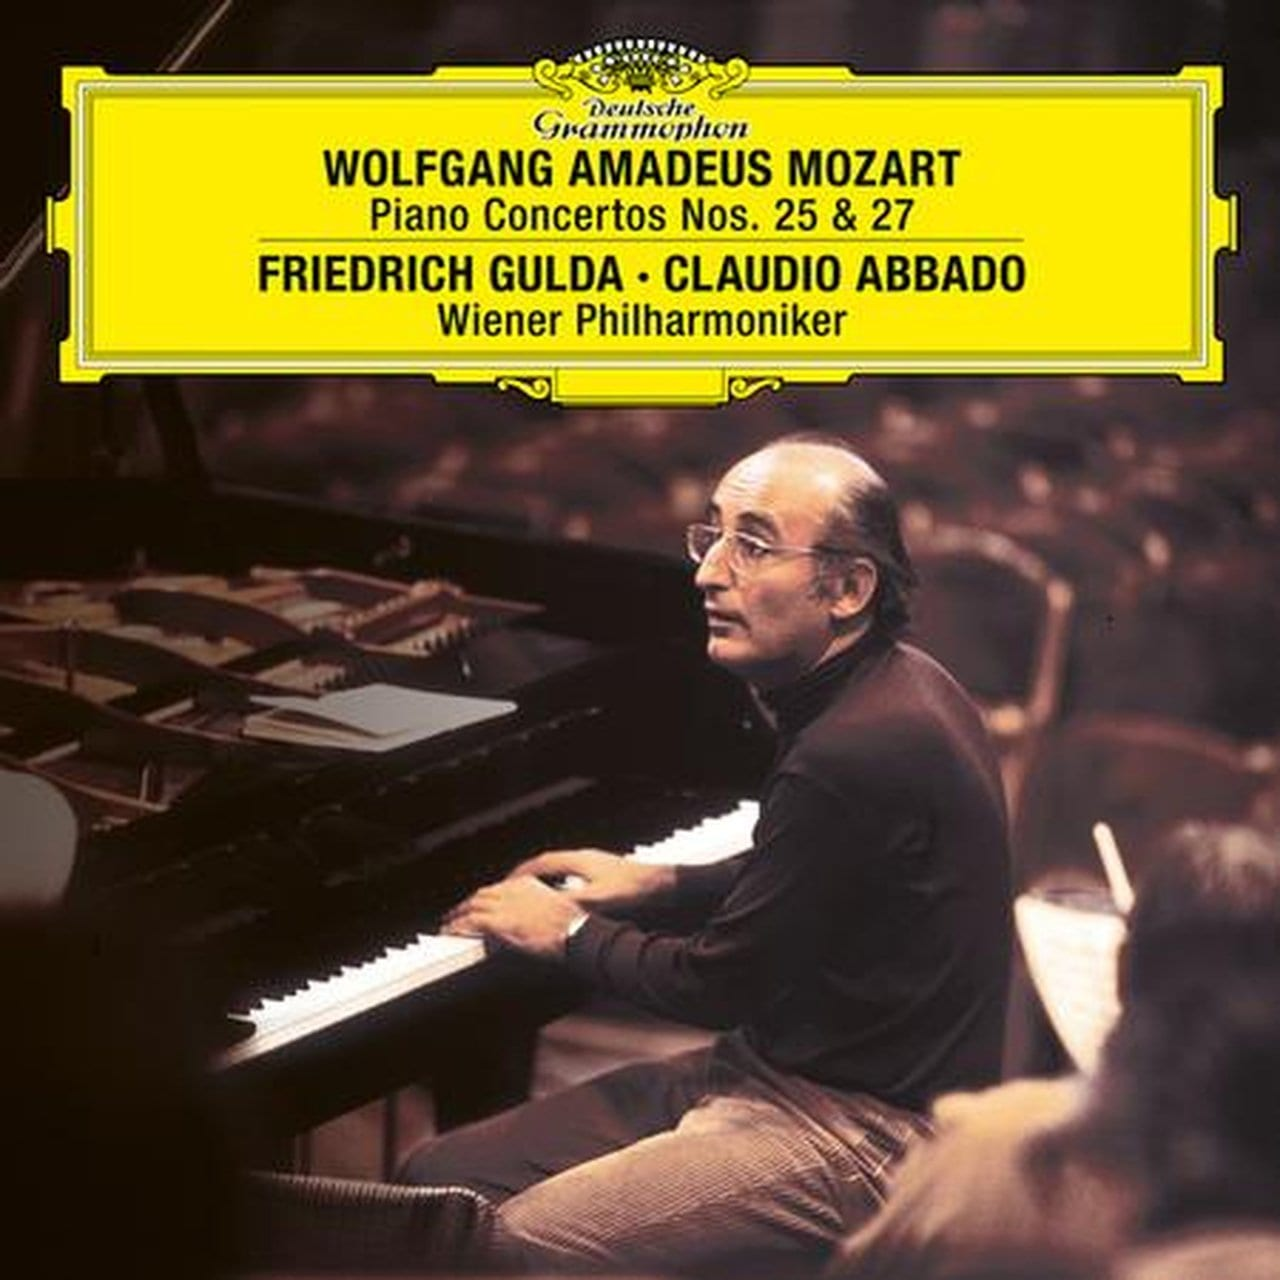 Wiener Philharmonica/Claudio Abbado/Friedrich Gulda - Piano Concertos Nos. 25 & (W.A. Mozart) [2LP] (180 Gram, import) - Urban Vinyl | Records, Headphones, and more.